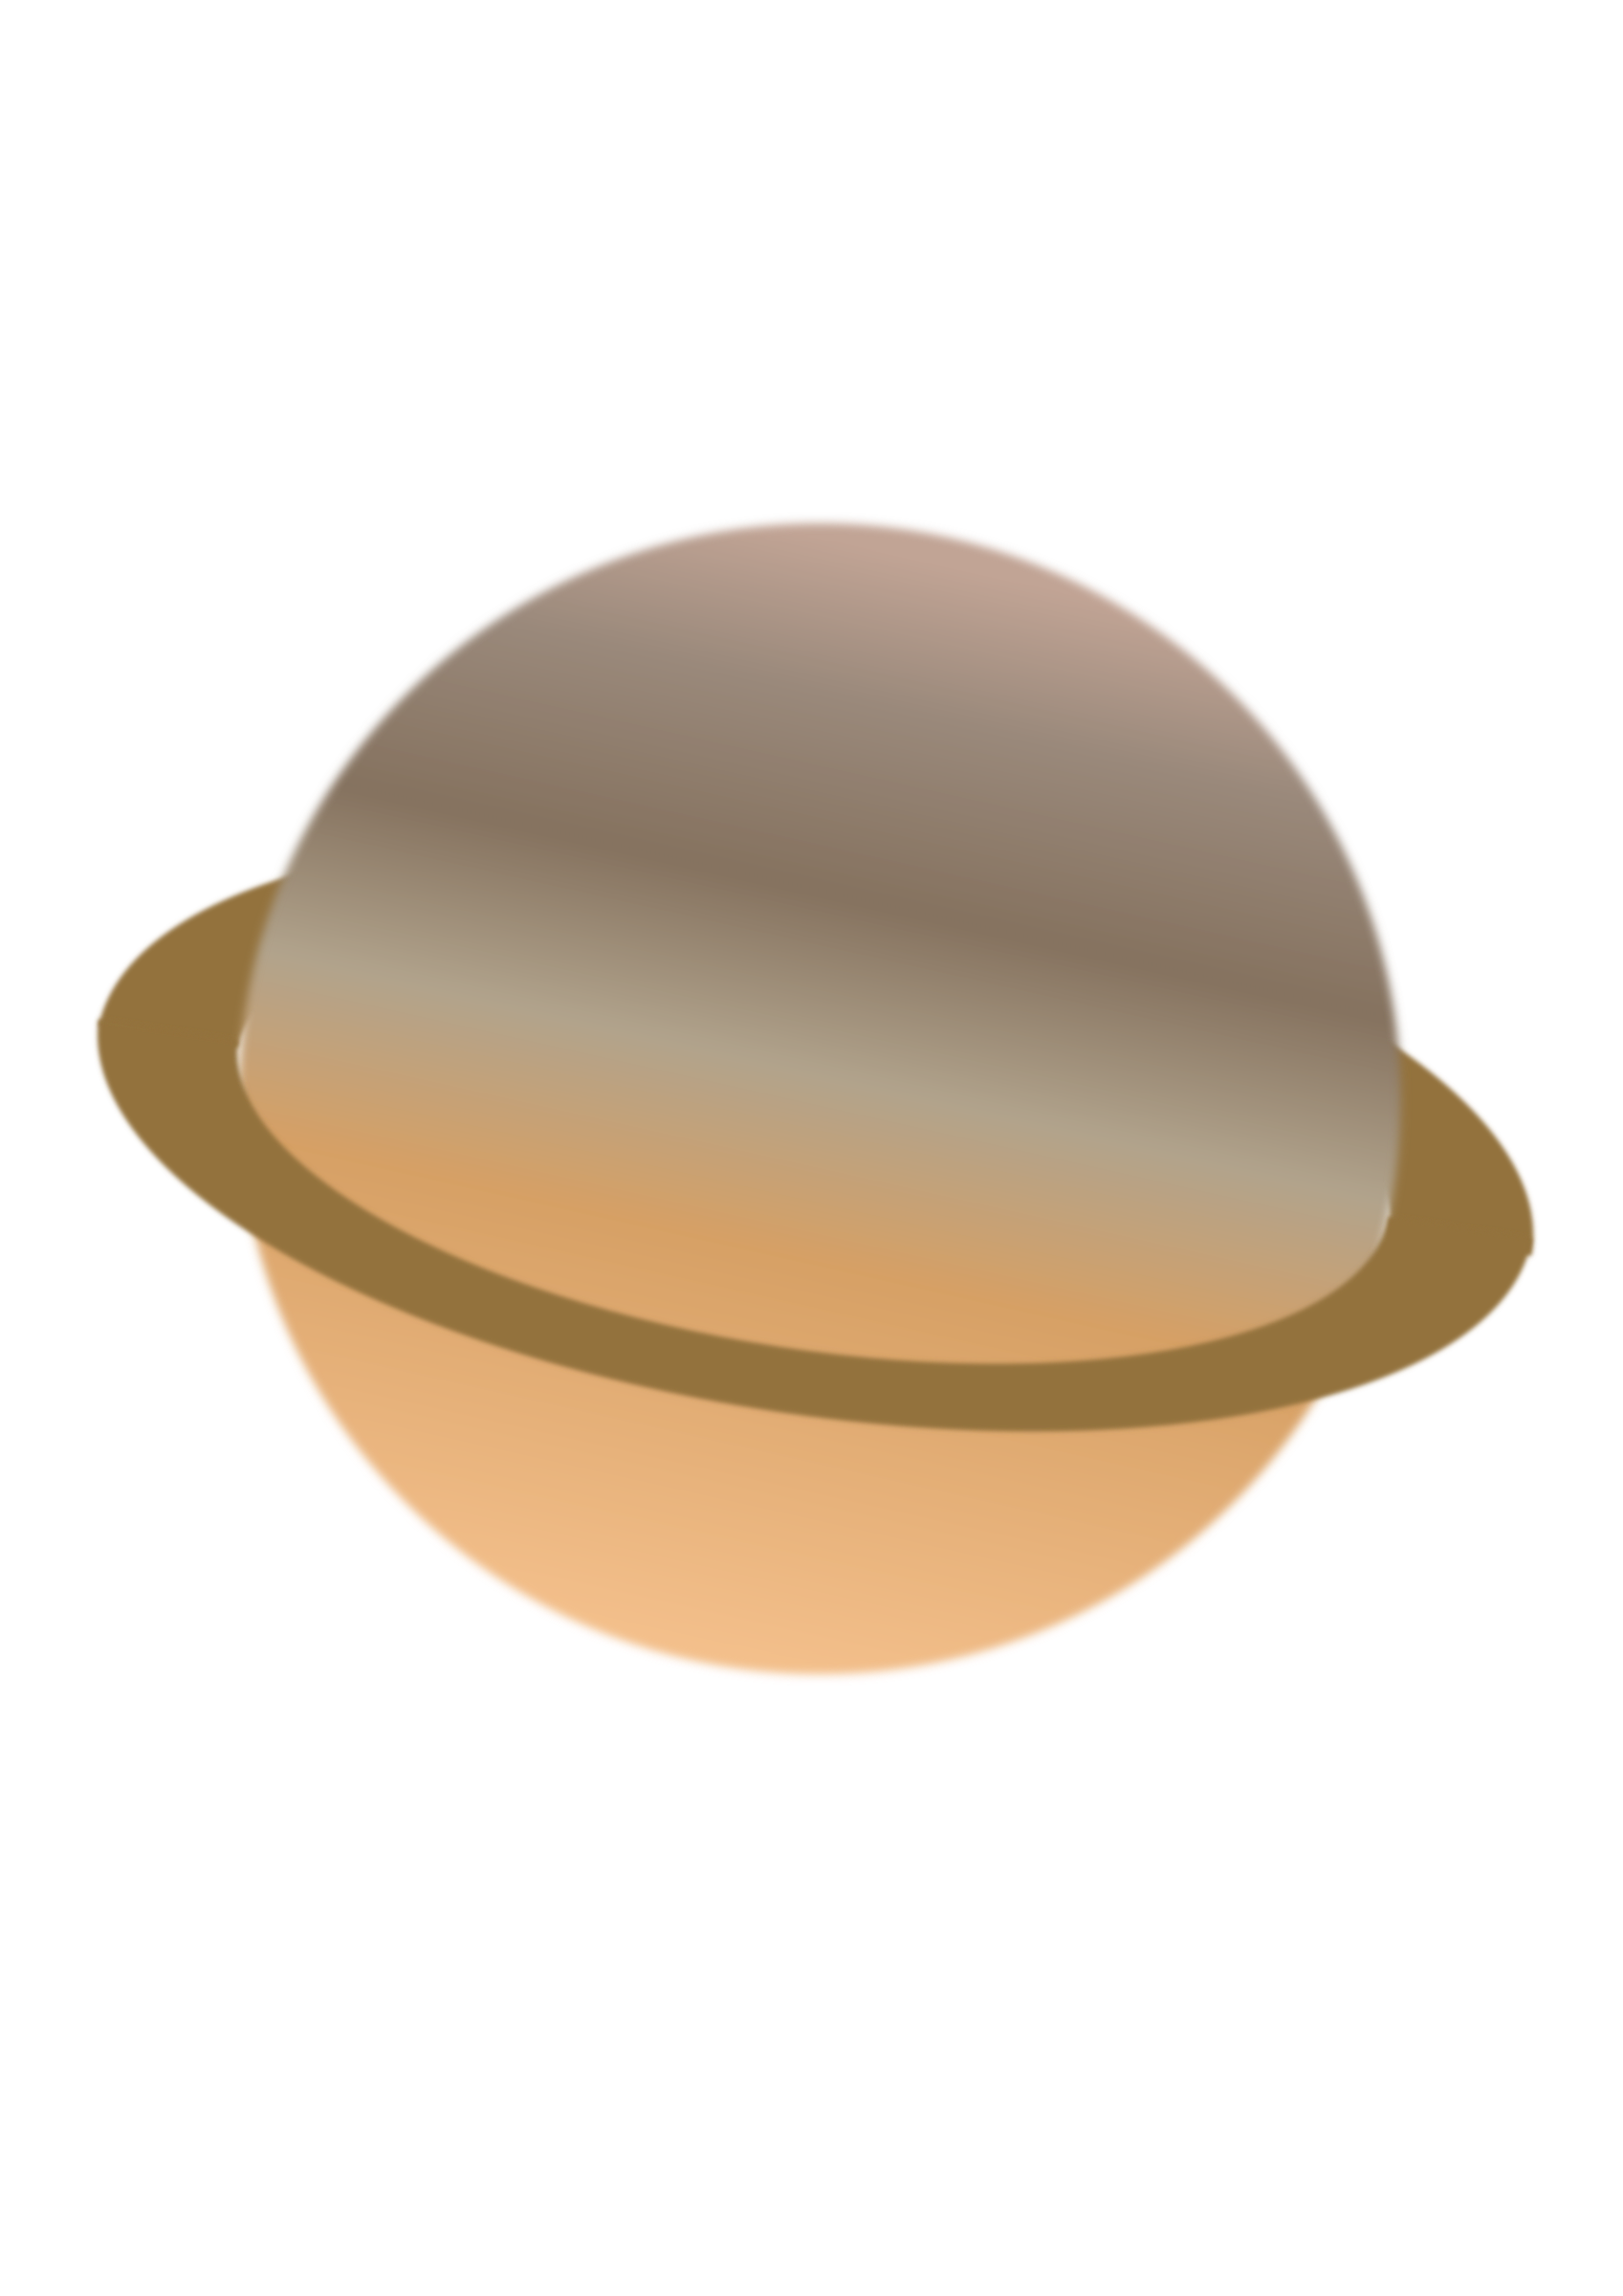 Saturn, Saturno by marl.useche